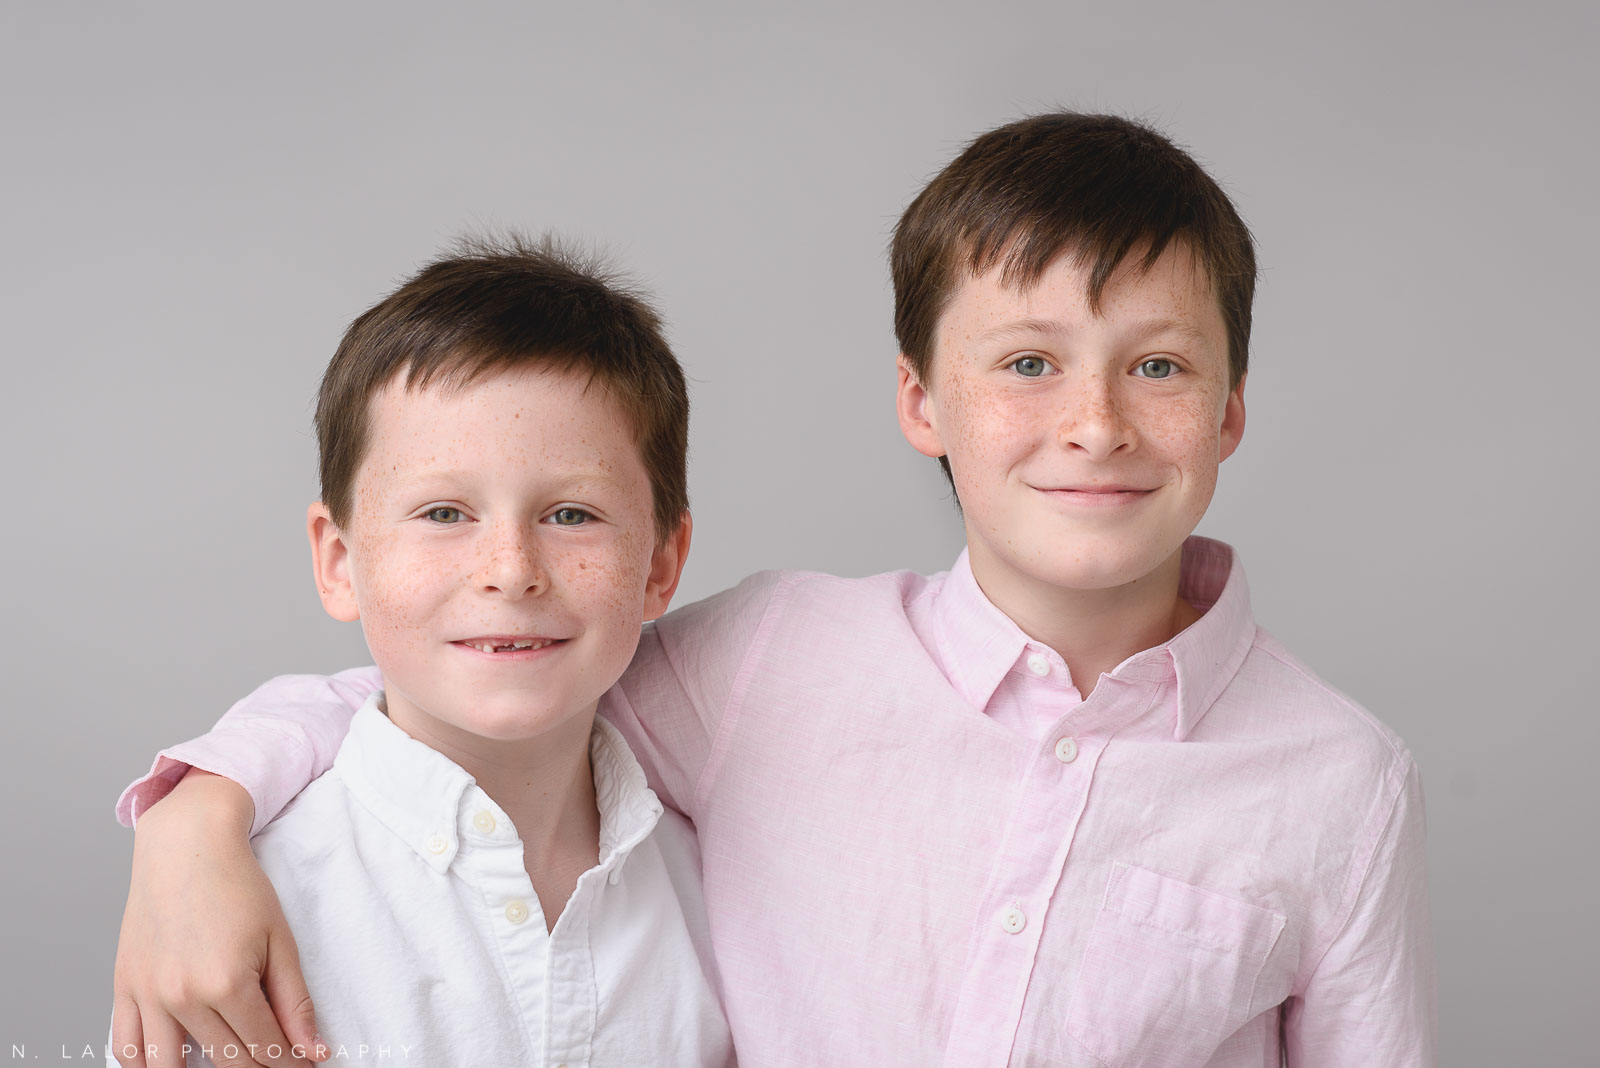 Image of two brothers being happy together.Studio portrait by N. Lalor Photography in Greenwich, Connecticut.